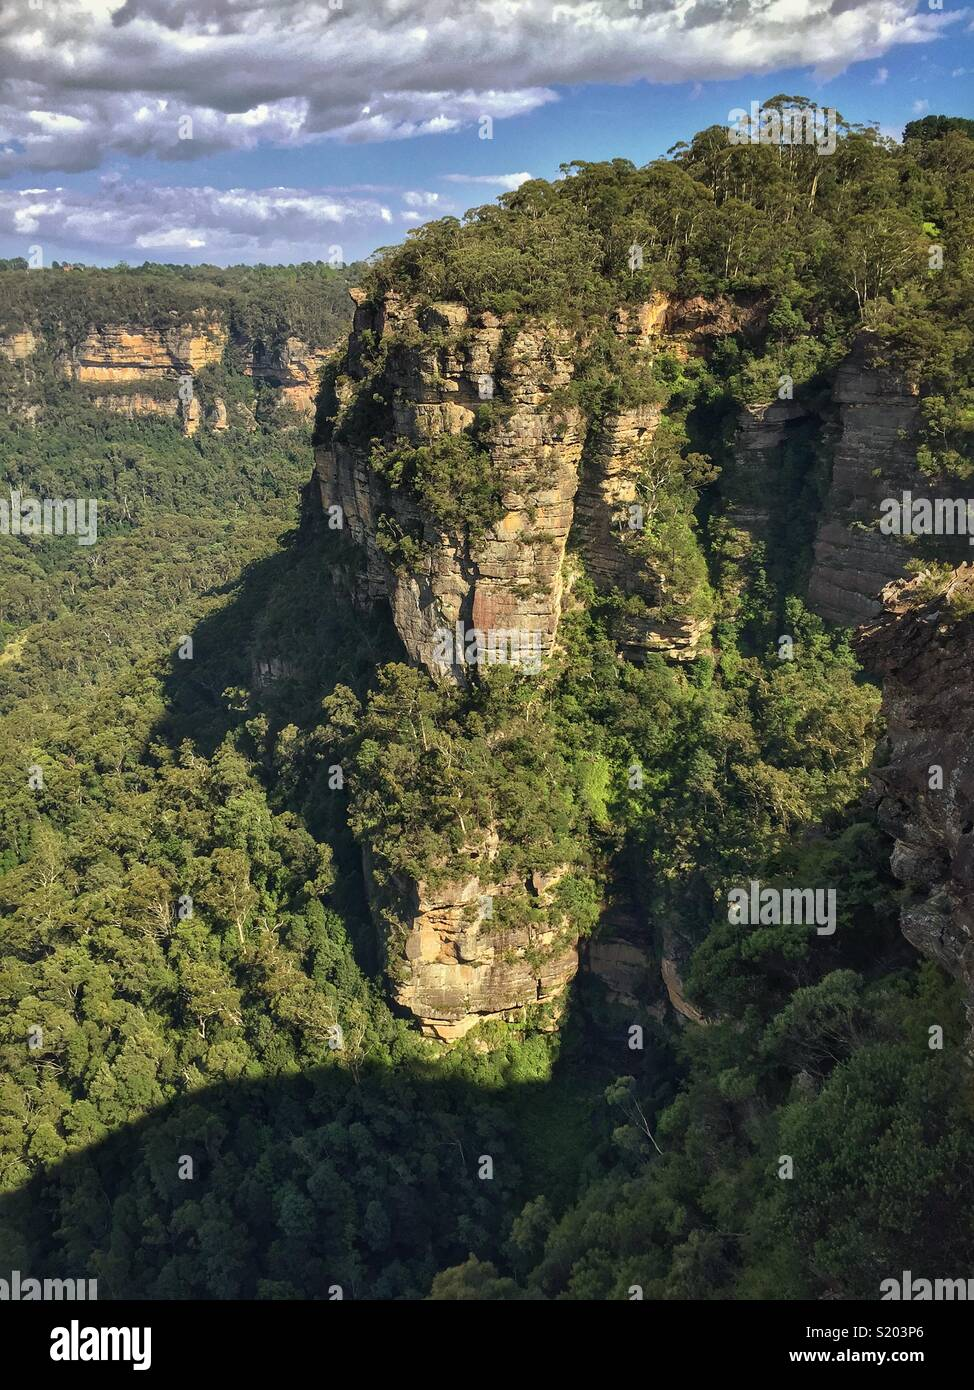 The sandstone cliffs of Leura and the Jamison Valley from Golf Links Lookout, Blue Mountains National Park, NSW, Australia - Stock Image